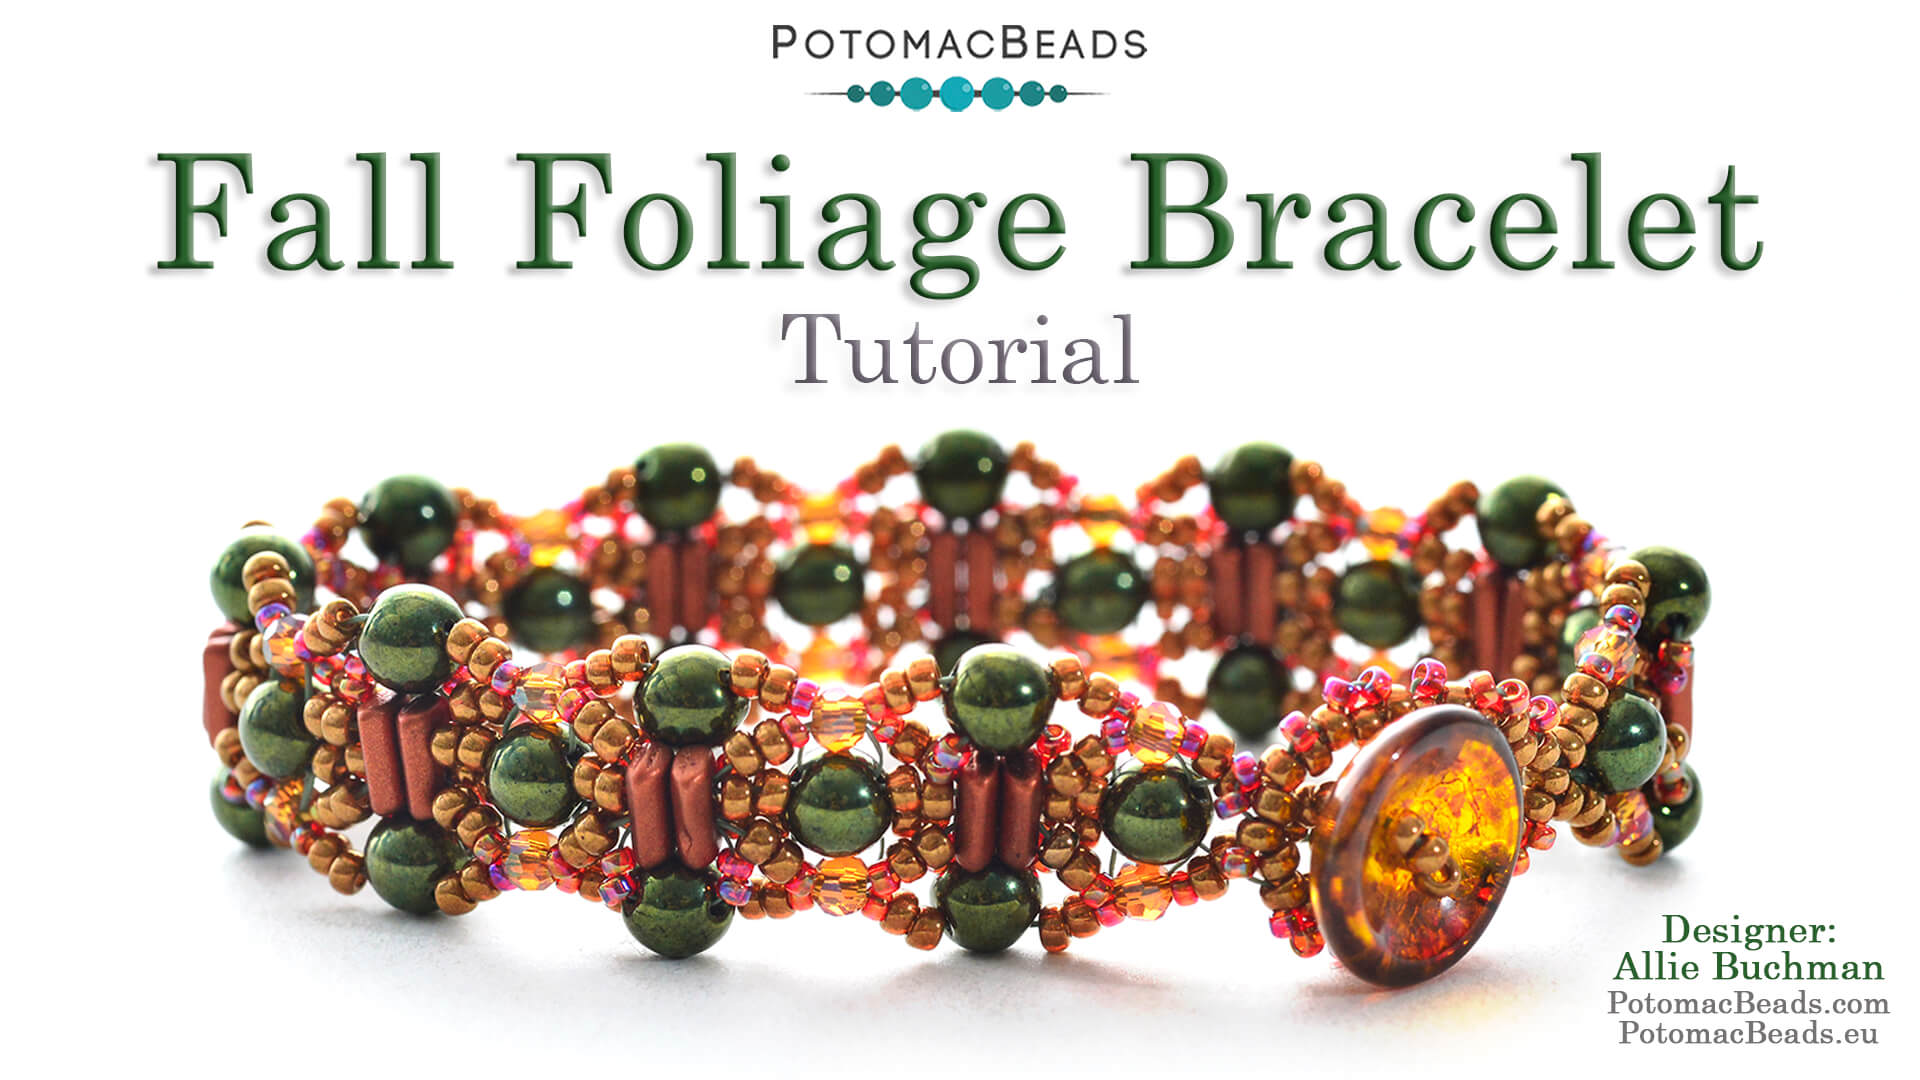 How to Bead / Videos Sorted by Beads / Potomac Crystal Videos / Fall Foliage Bracelet Tutorial